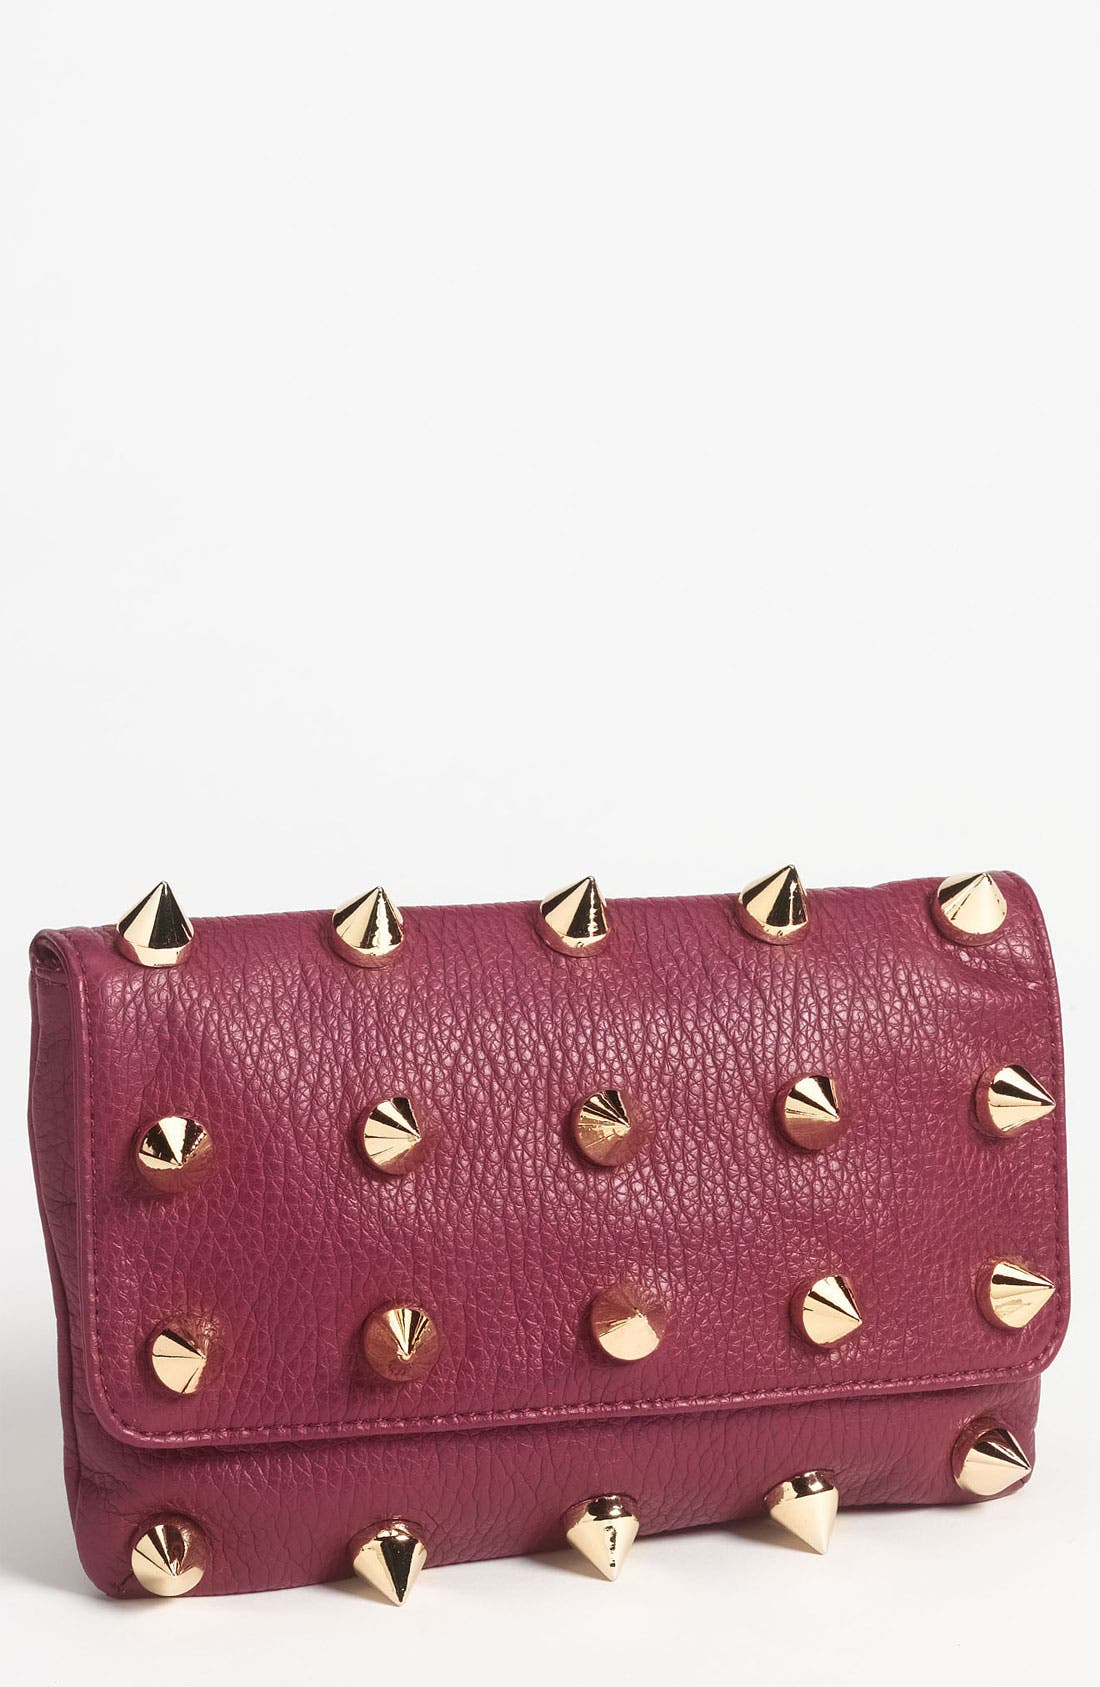 Main Image - Deux Lux 'Empire' Faux Leather Clutch